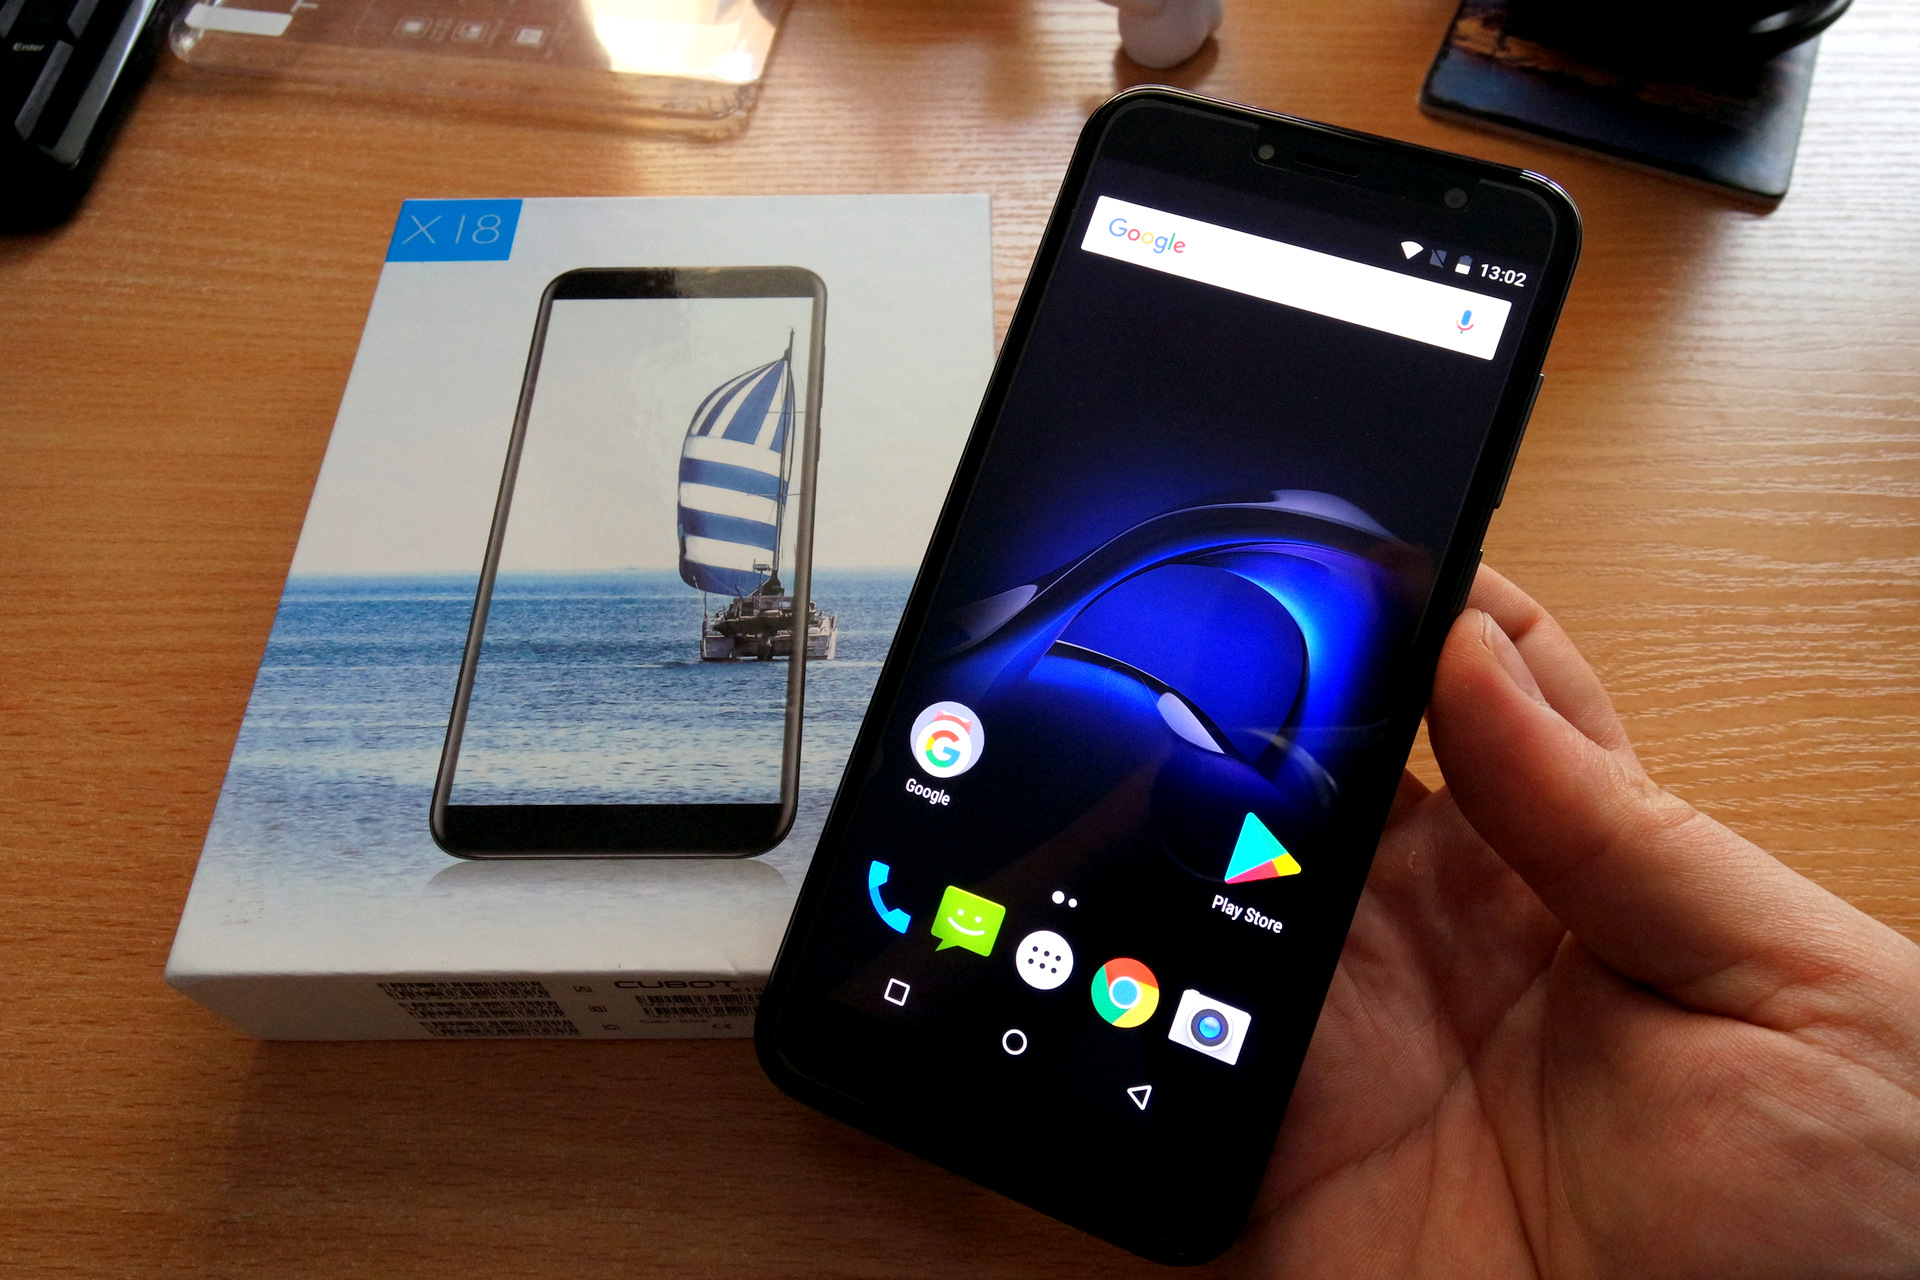 Cubot X18 Review Cheapest 18 9 Display Phone Good Value